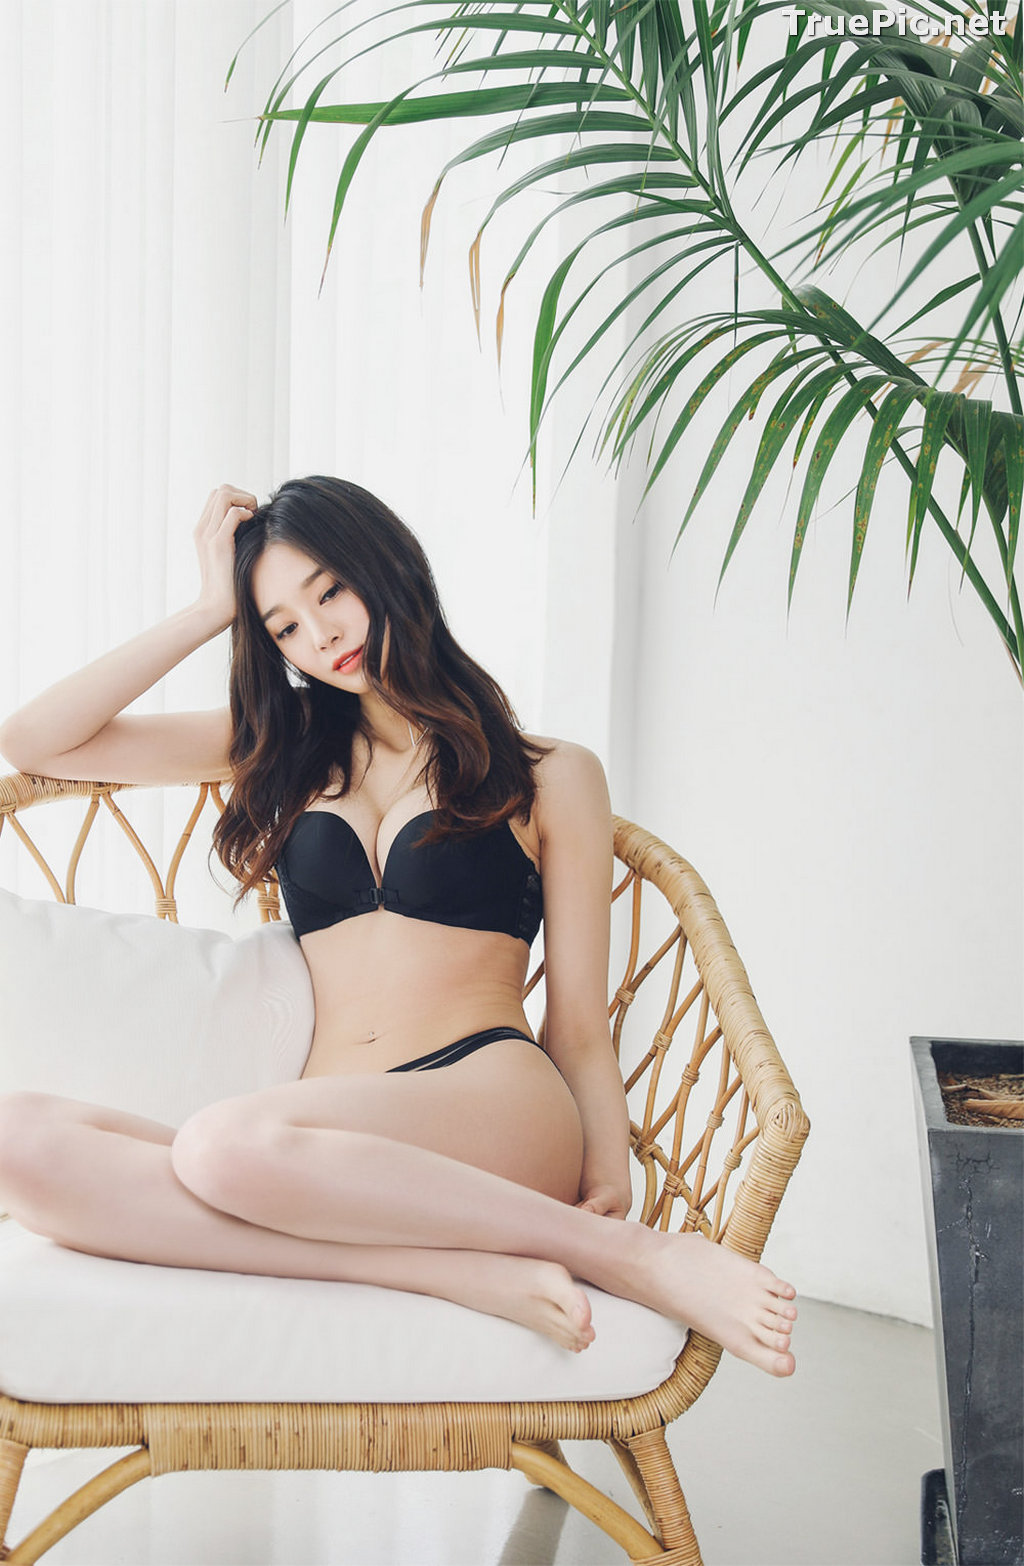 Image Korean Fashion Model – Carmen – Black Lingerie and Sleepwear - TruePic.net - Picture-9